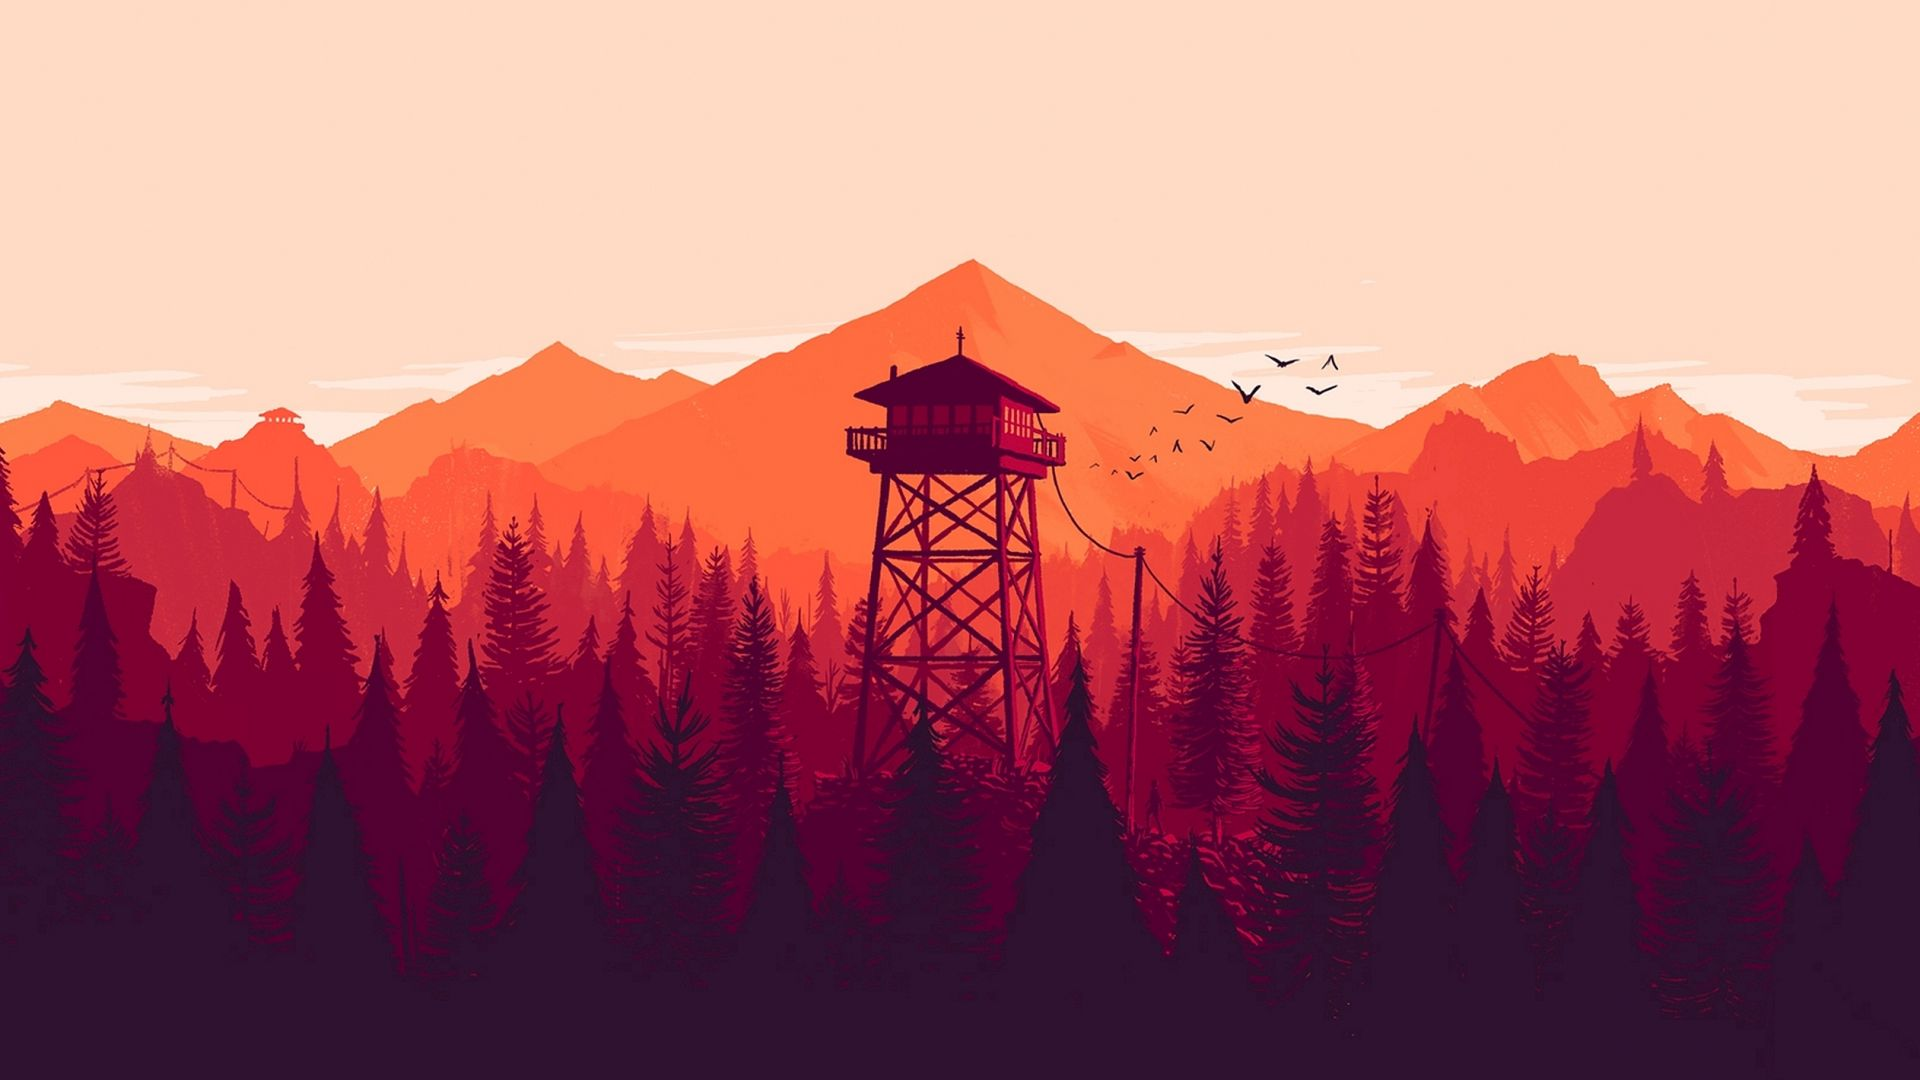 Firewatch, Лучшие игры 2015, игра, квест, хоррор, ПК, Firewatch, Best Games 2015, game, quest, horror, PC (horizontal)